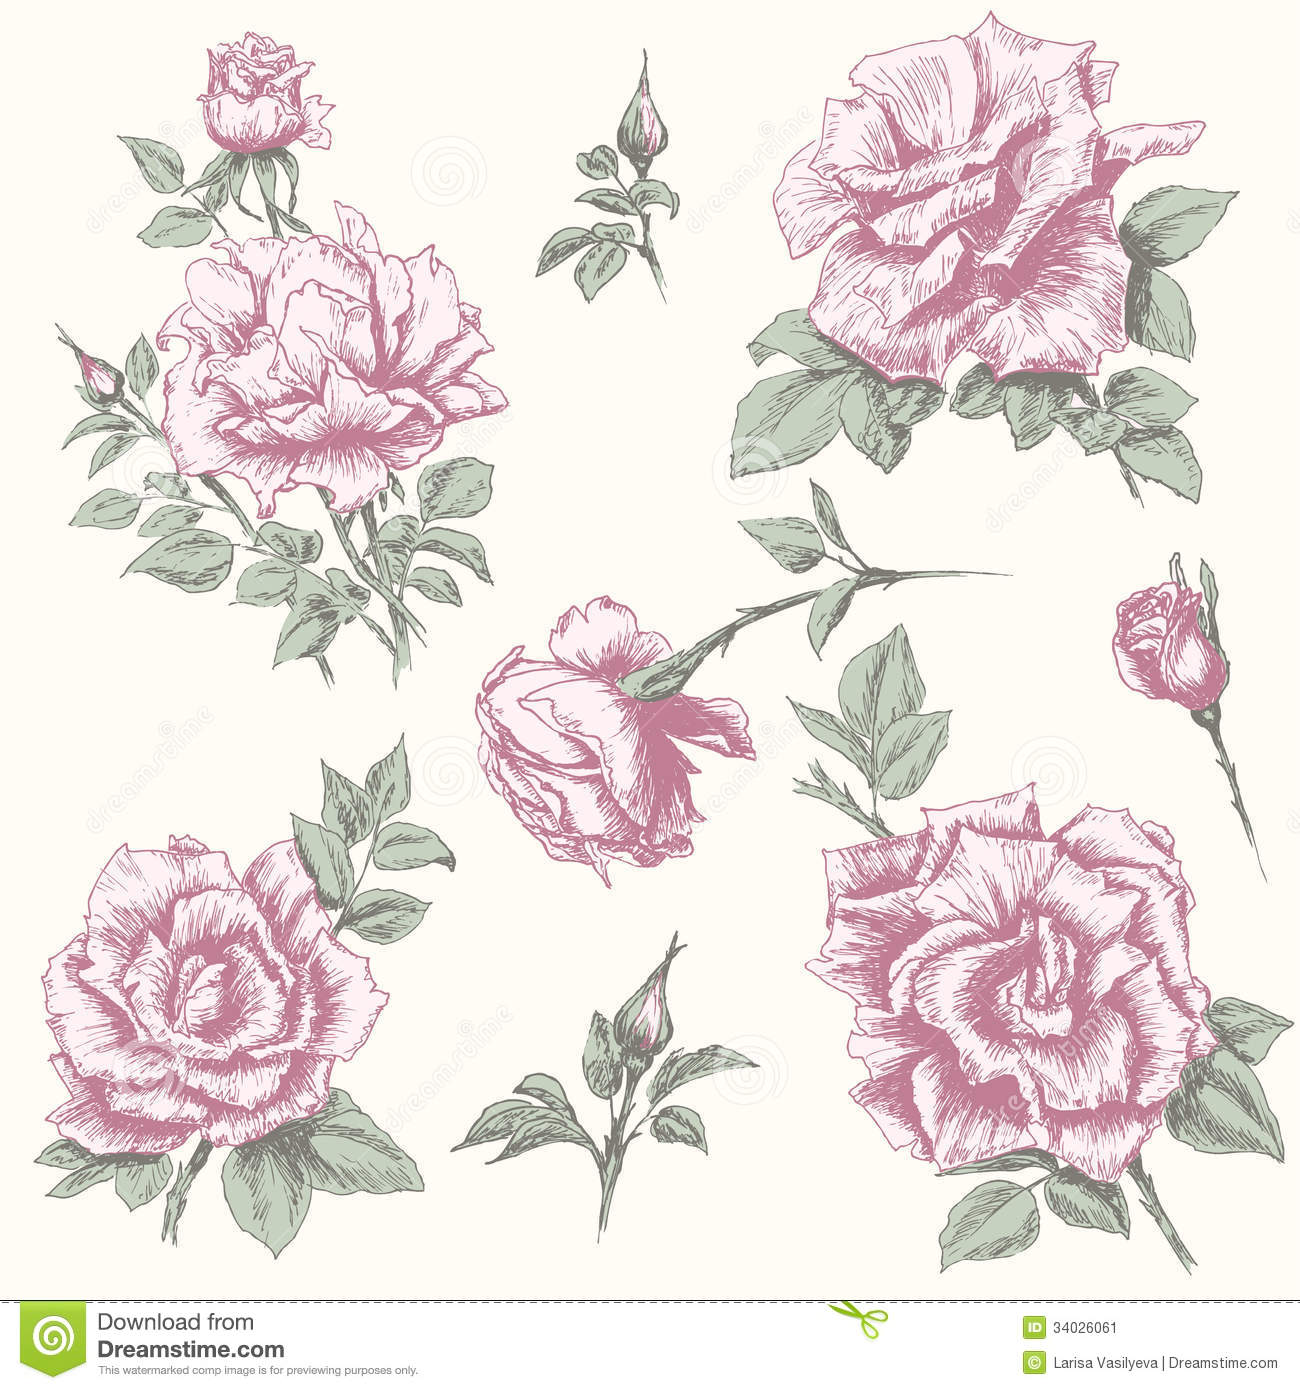 Illustration: Vintage Rose Collection